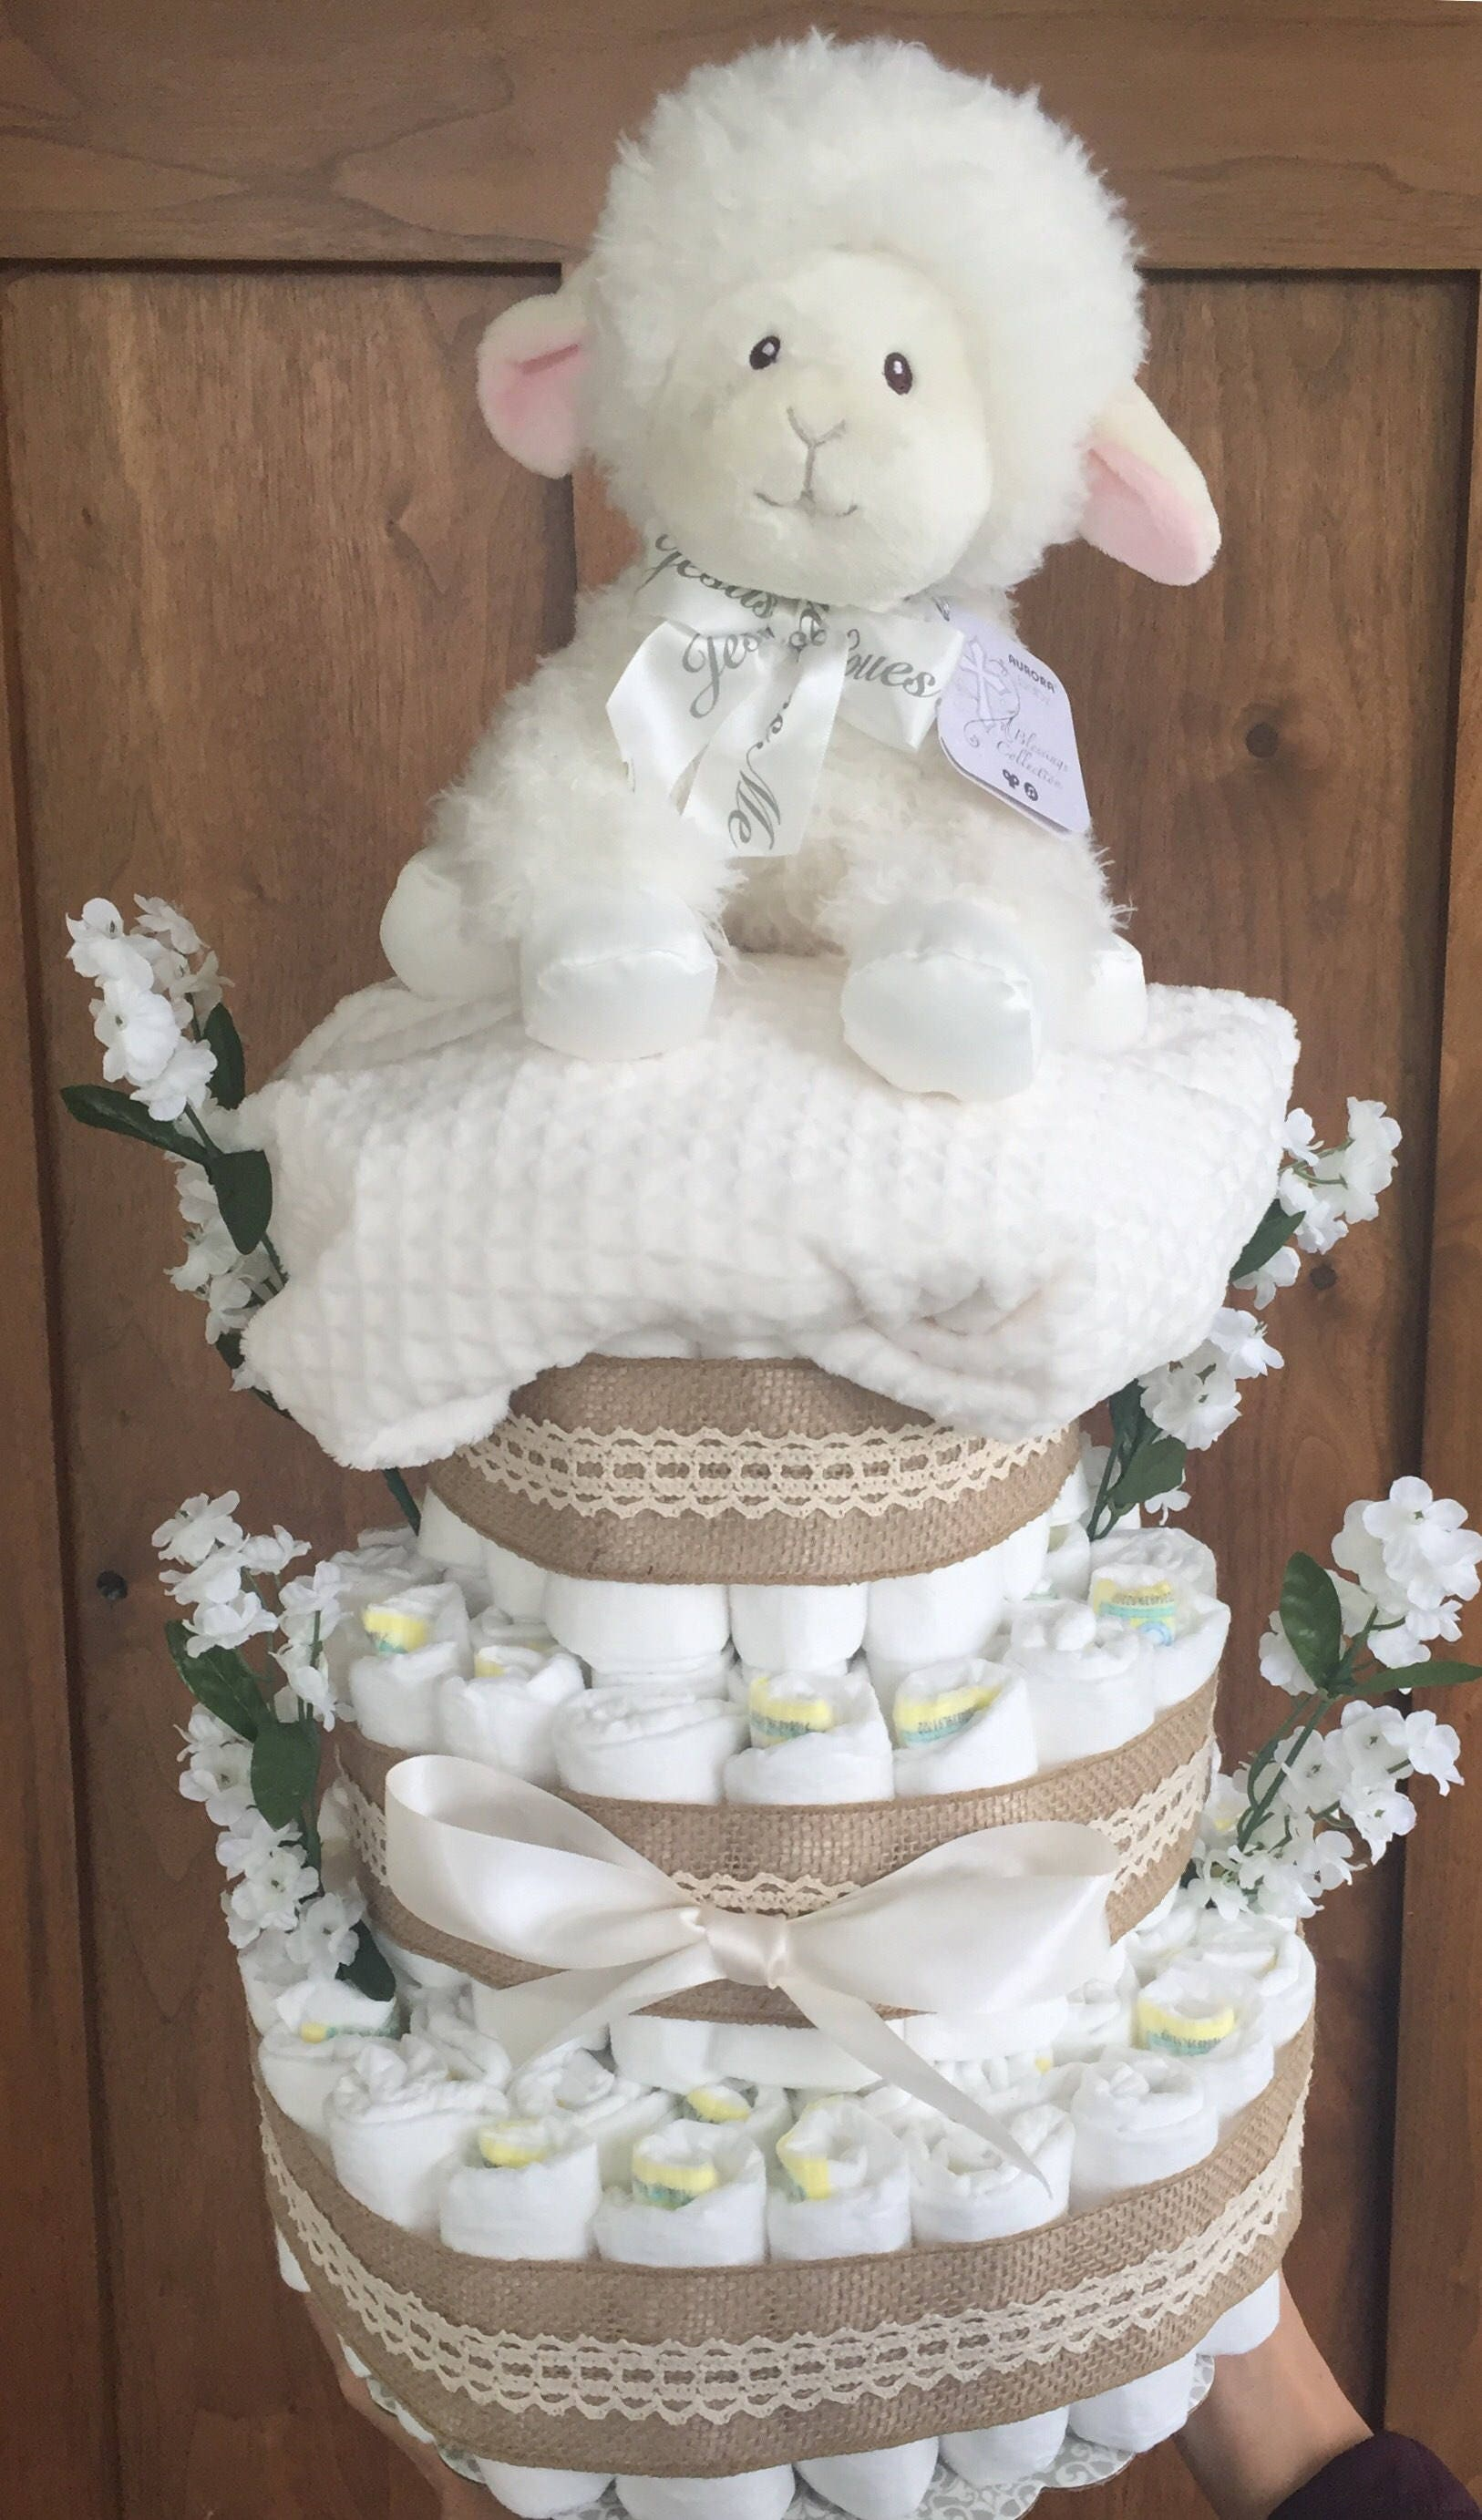 Burlap Lamb Baby Shower Decorations, Lamb Diaper Cake, Spring Diaper Cake, Burlap  Baby Shower Decor, Dreamy Lamb Sheep Baby Shower